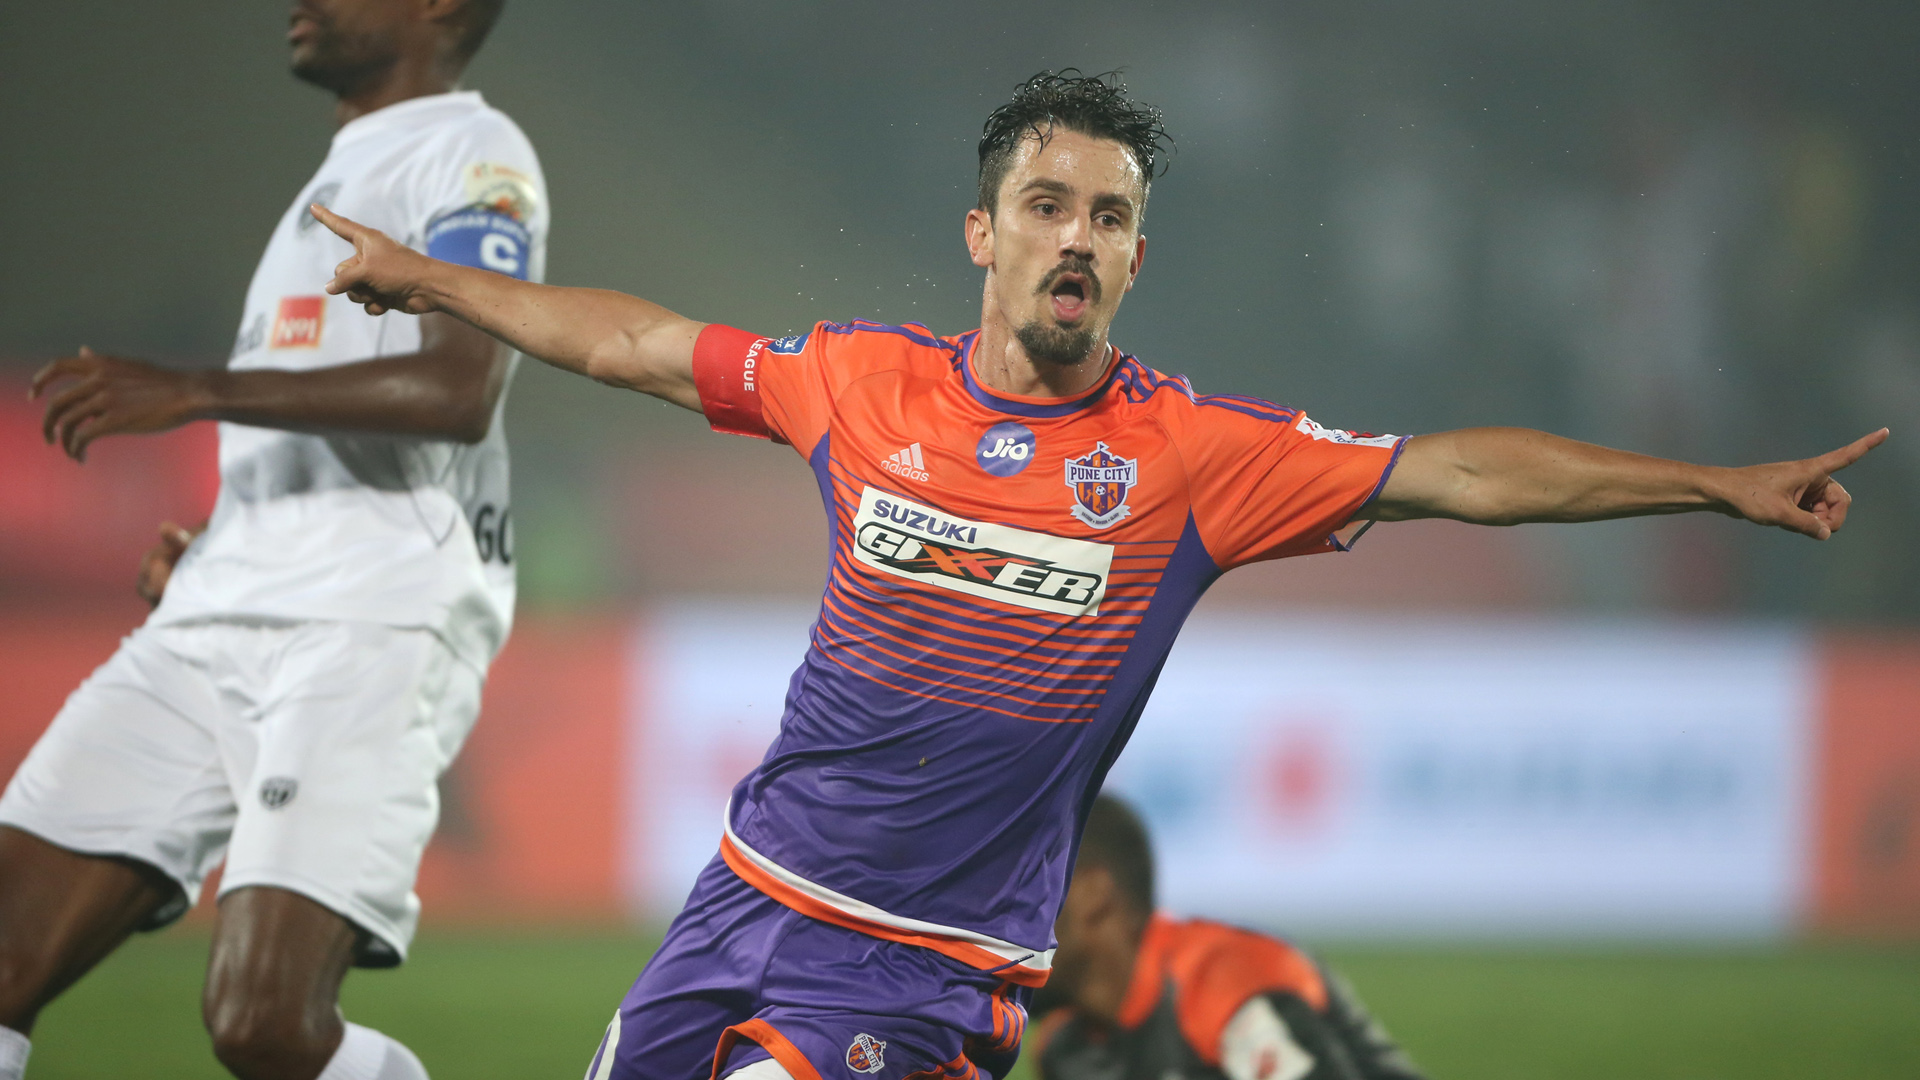 Marcelinho NorthEast United FC FC Pune City ISL 4 2017/2018